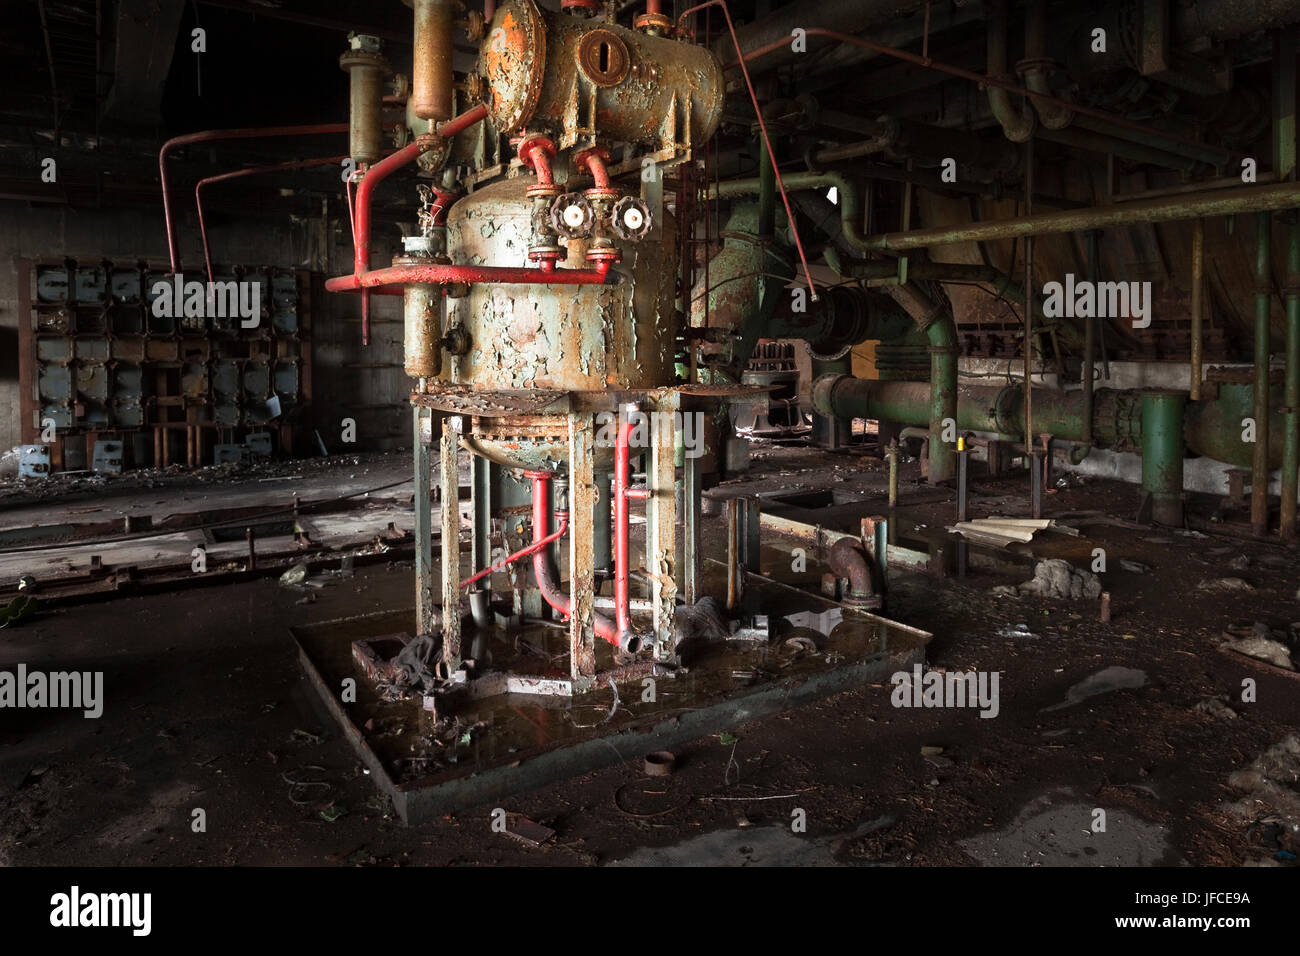 Abandoned industrial site near Venice, Italy. Stock Photo